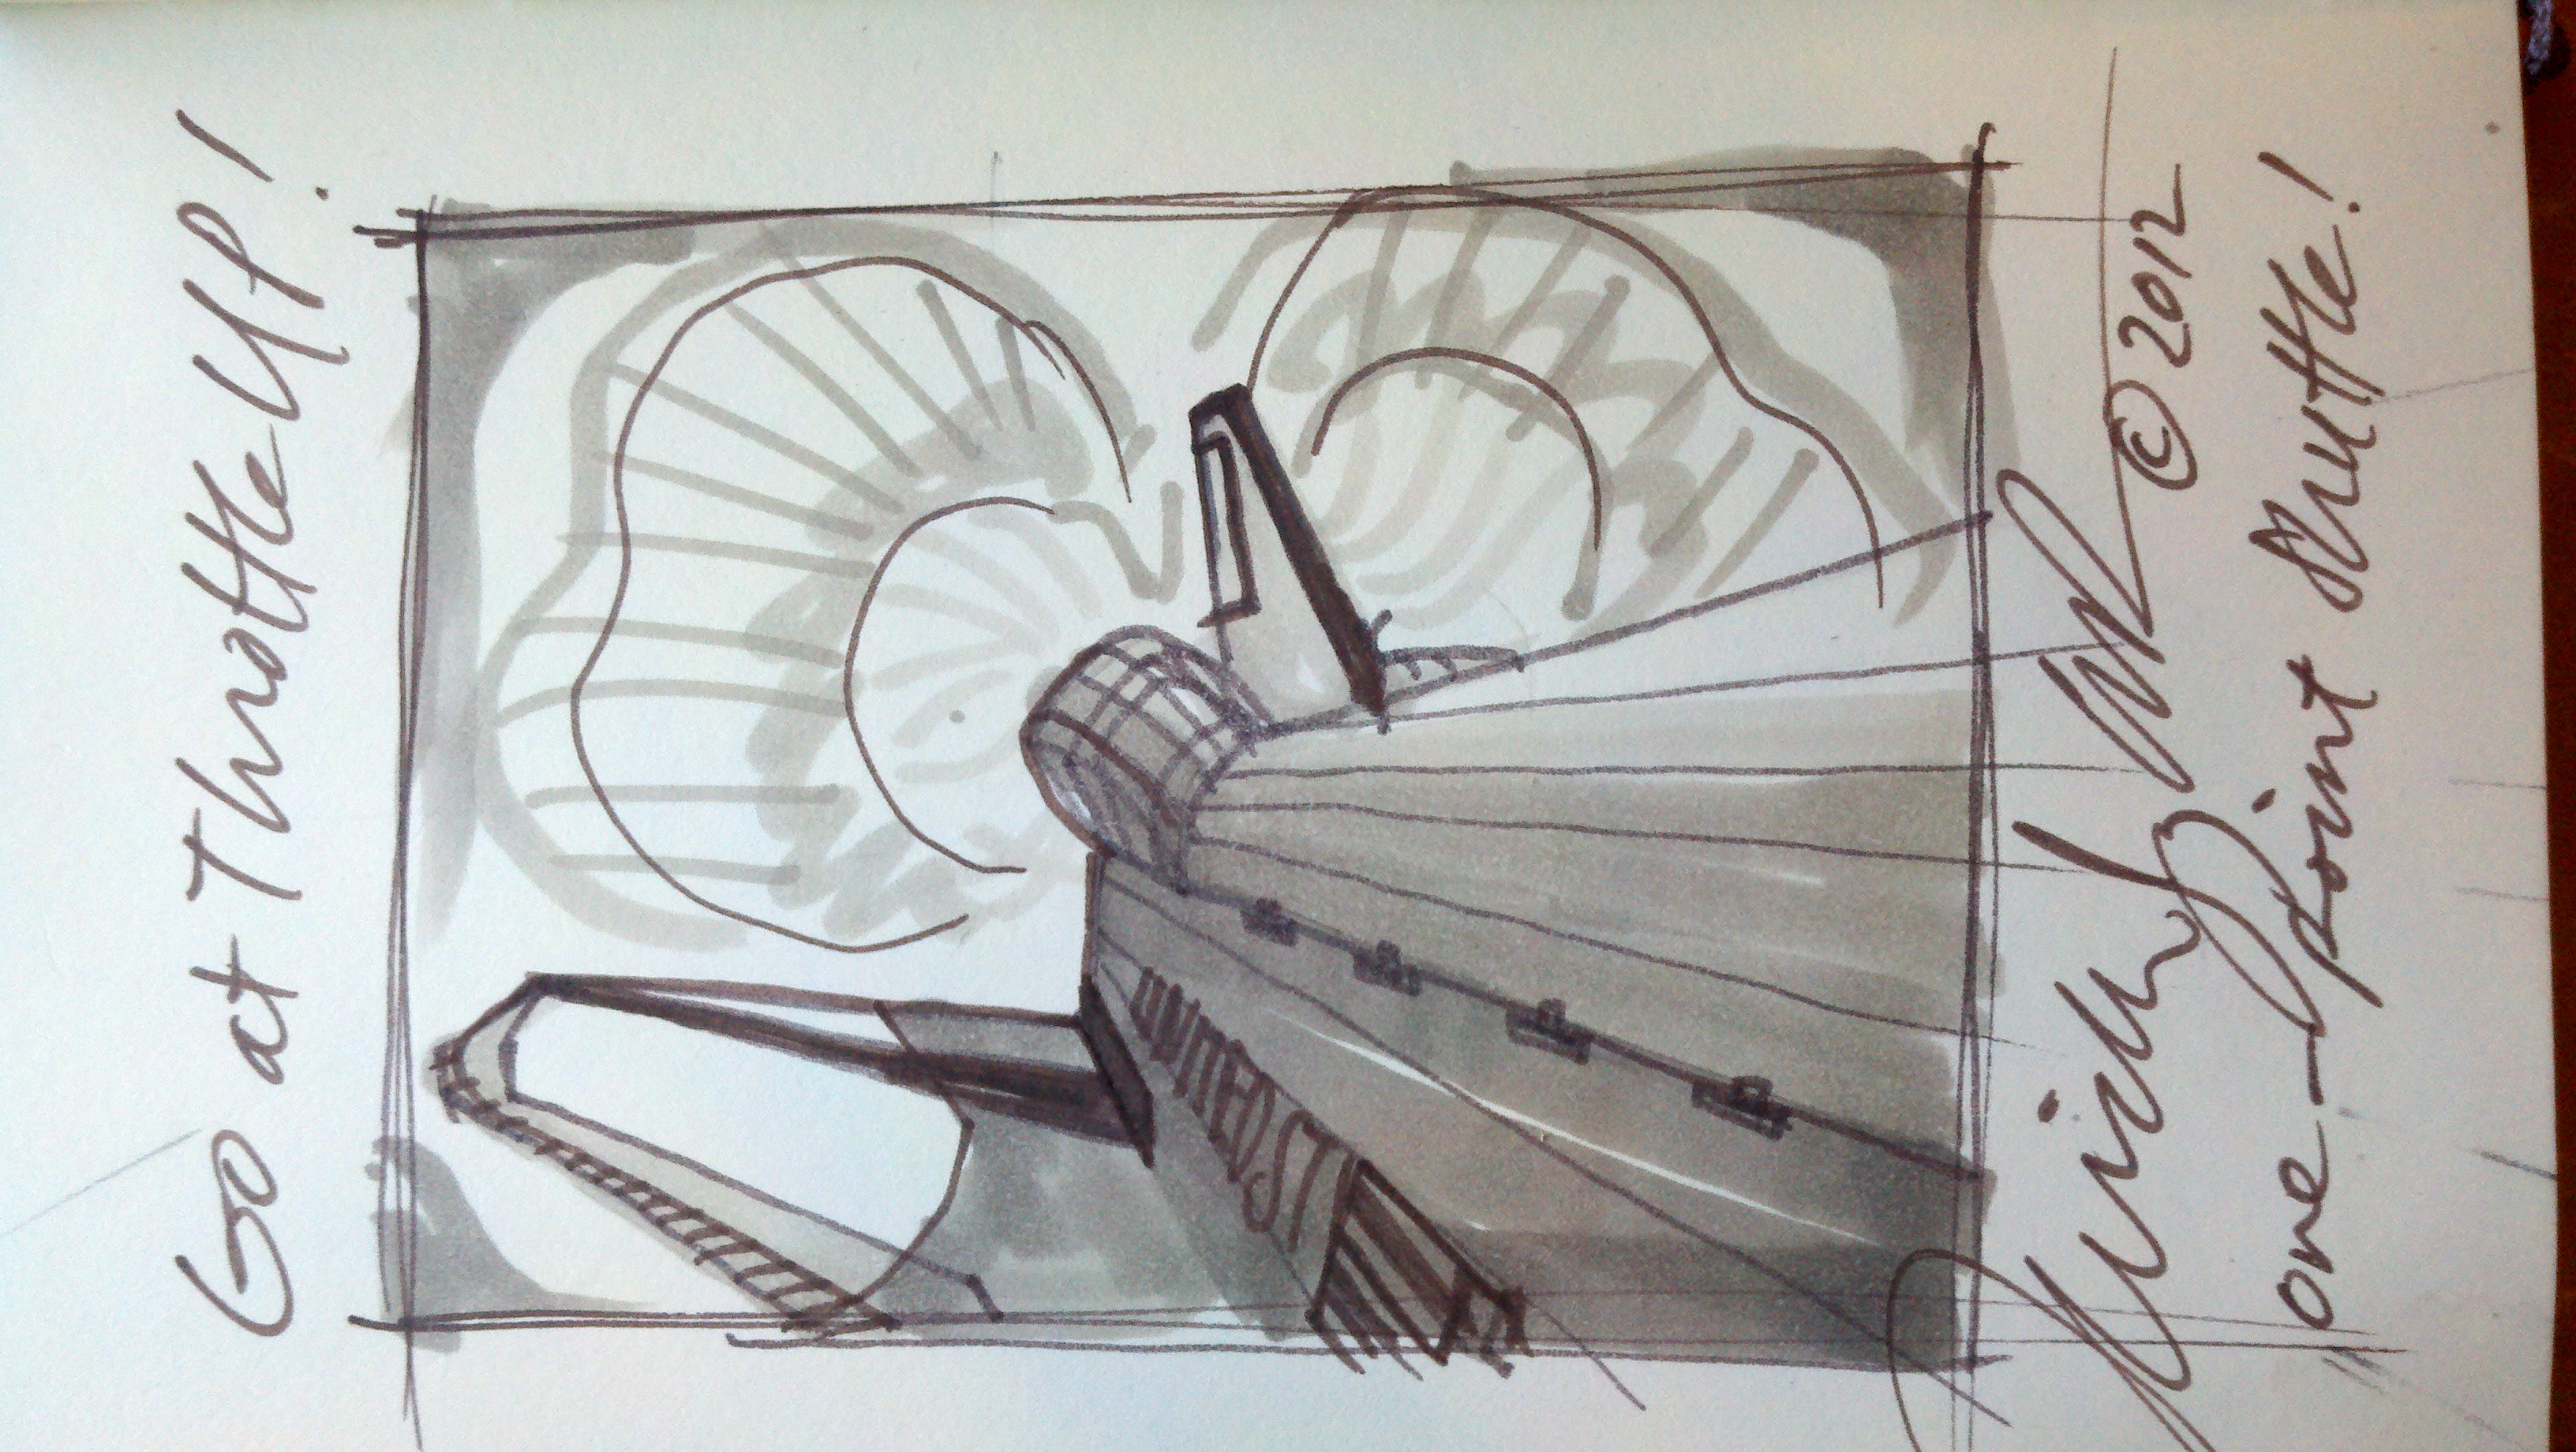 space shuttle - DRAWING - go at throttle up